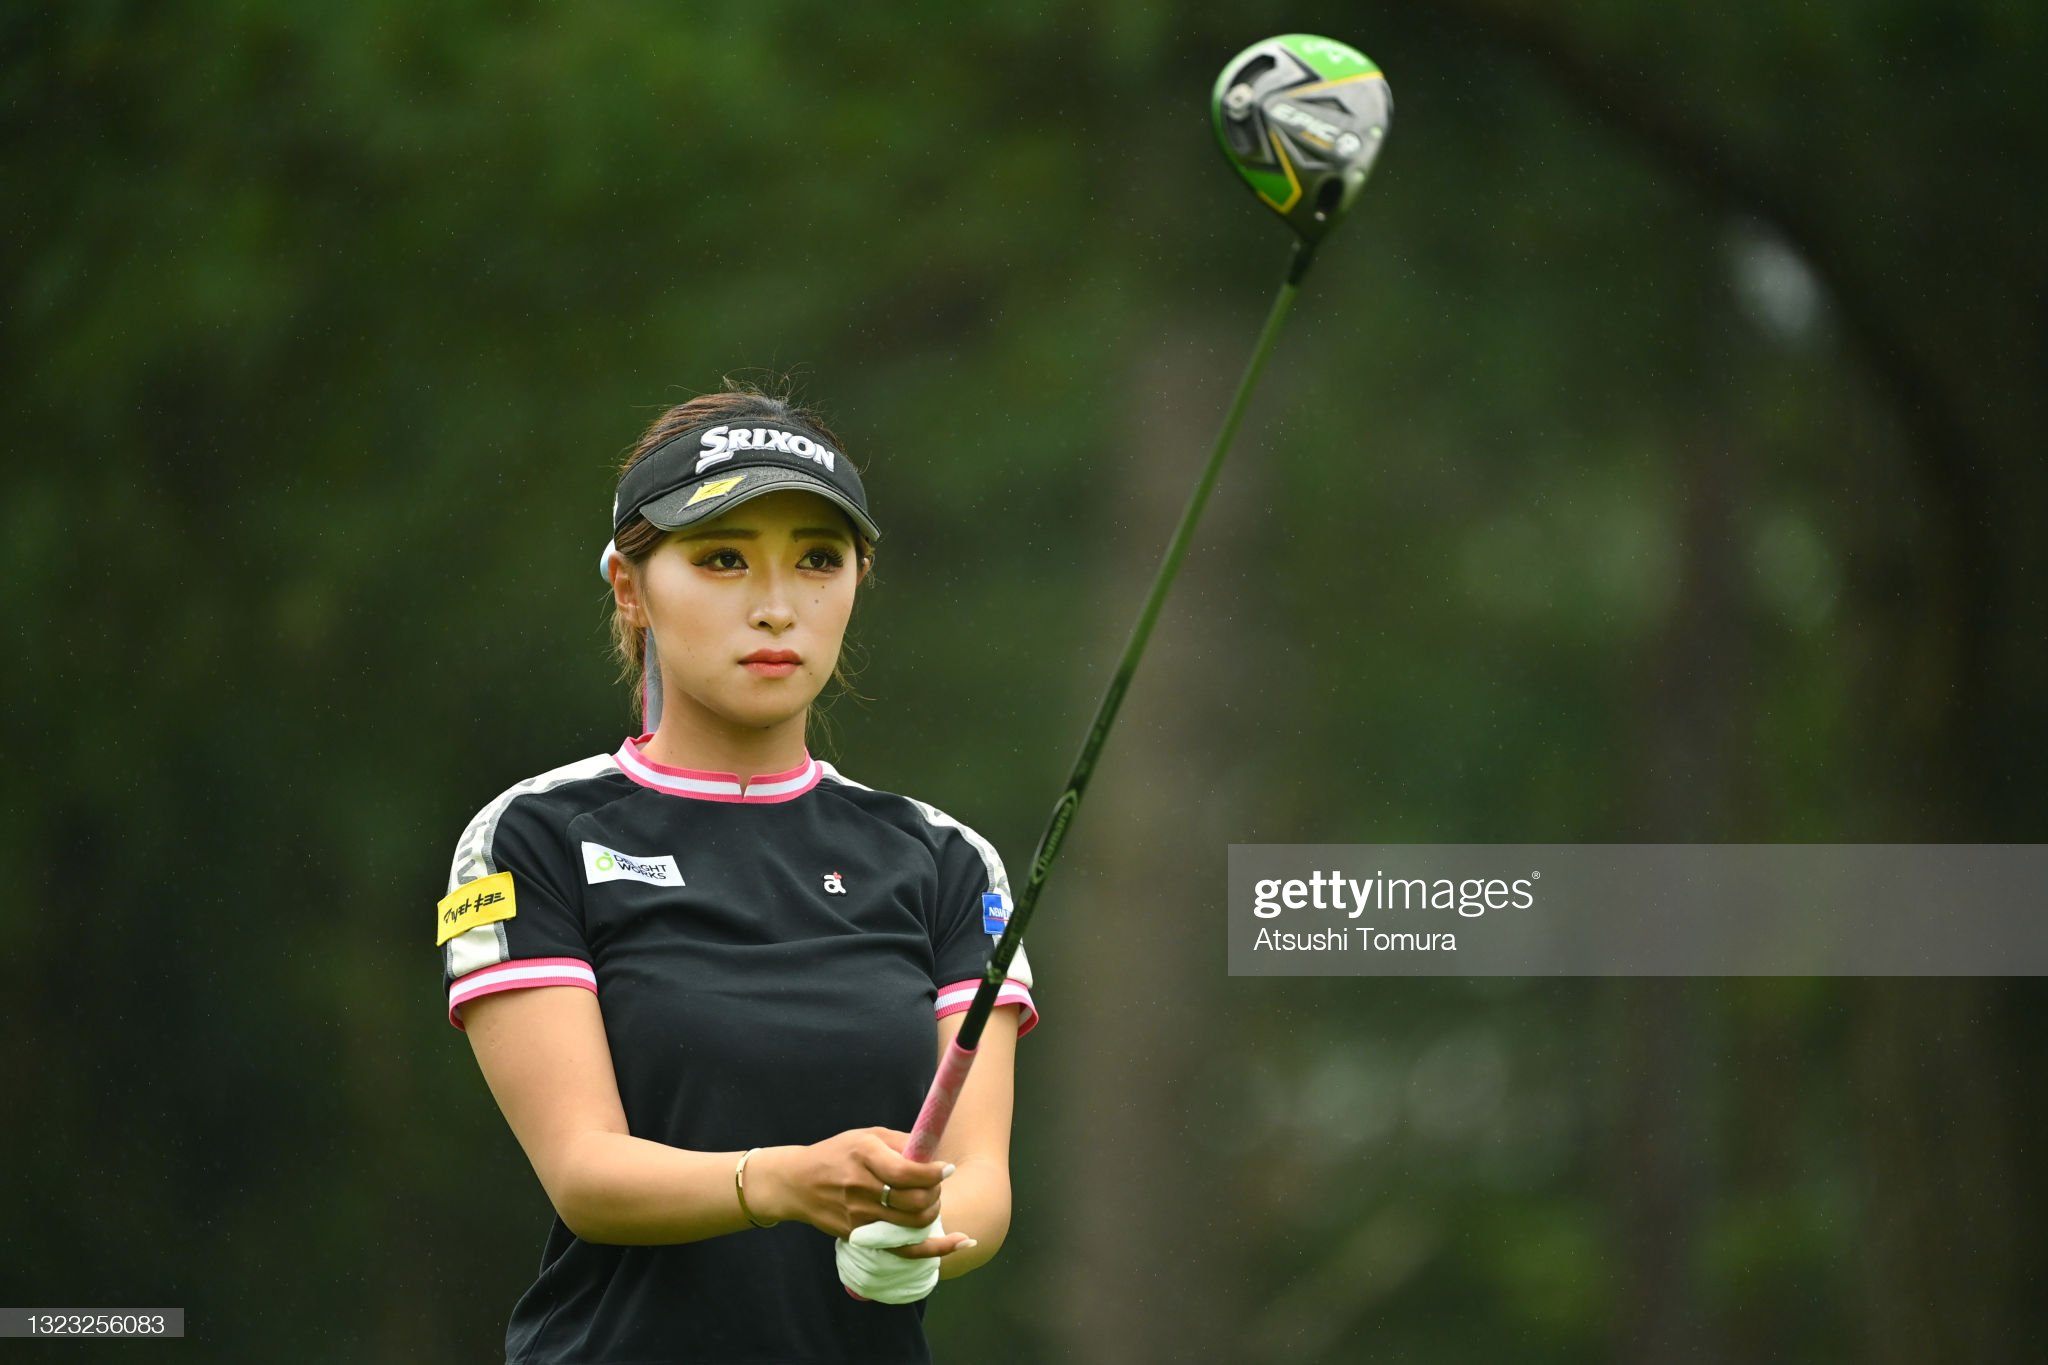 https://media.gettyimages.com/photos/reika-usui-of-japan-is-seen-before-her-tee-shot-on-the-2nd-hole-the-picture-id1323256083?s=2048x2048